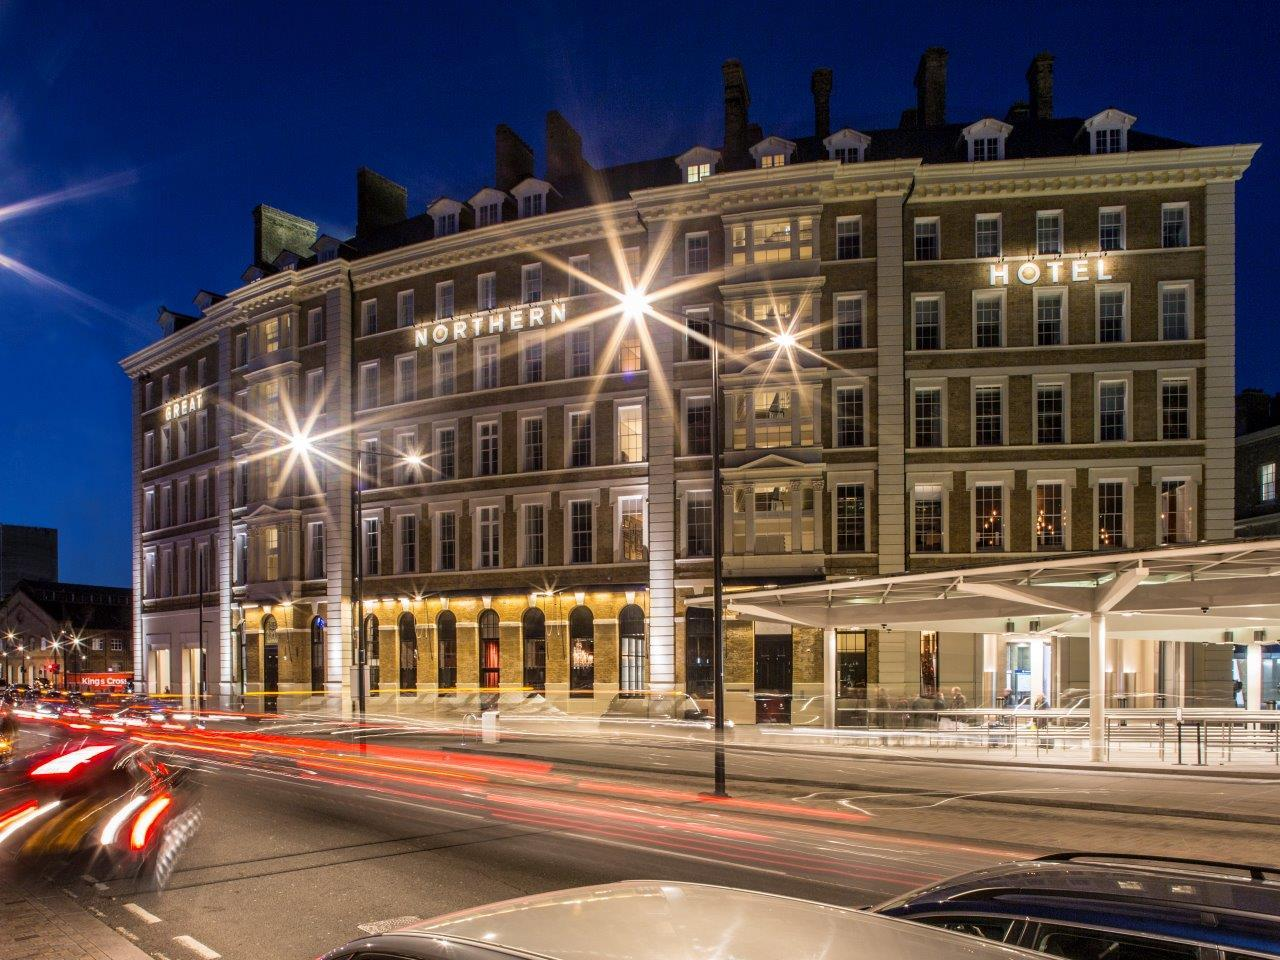 Starwood Hotels Resorts Introduces Tribute Portfolio In Europe With Great Northern Hotel Business Wire